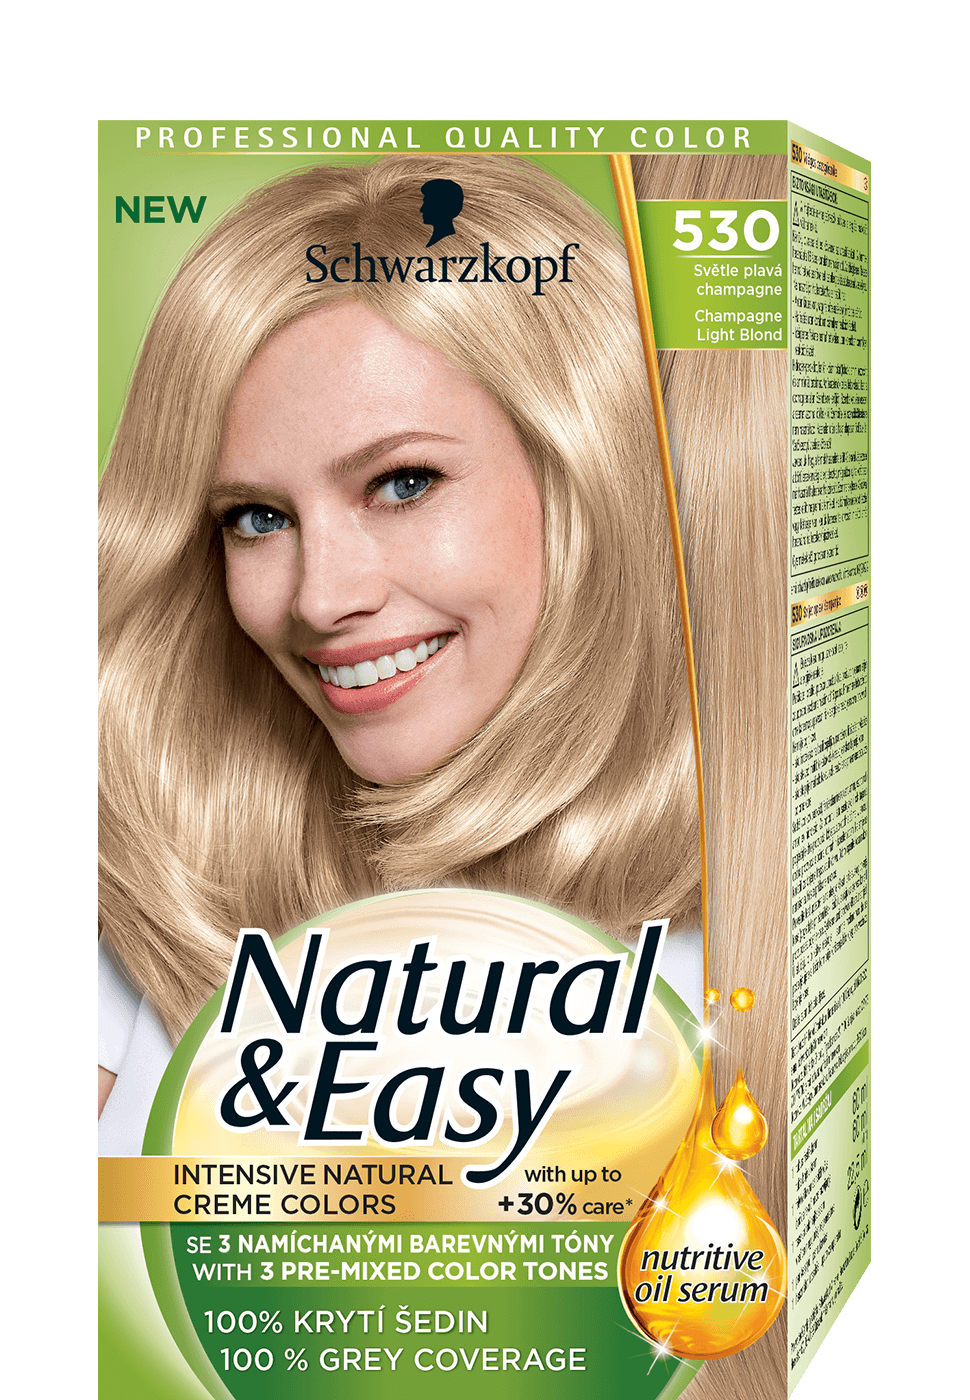 natural_easy_com_blonde_hair_530_champagner_light_blond_970x1400